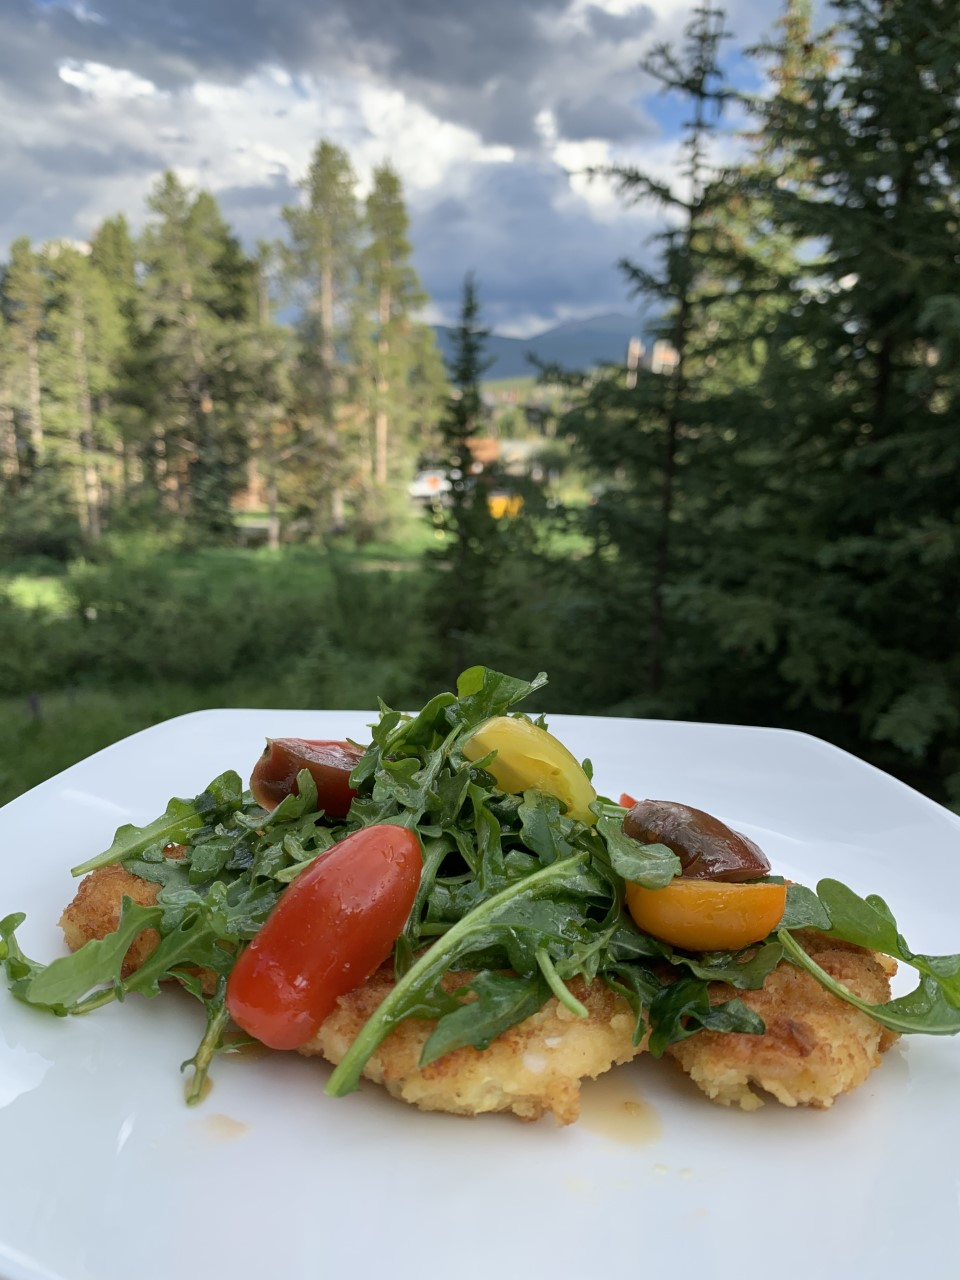 Thinly coated chicken breasts topped with an arugula & tomato salad